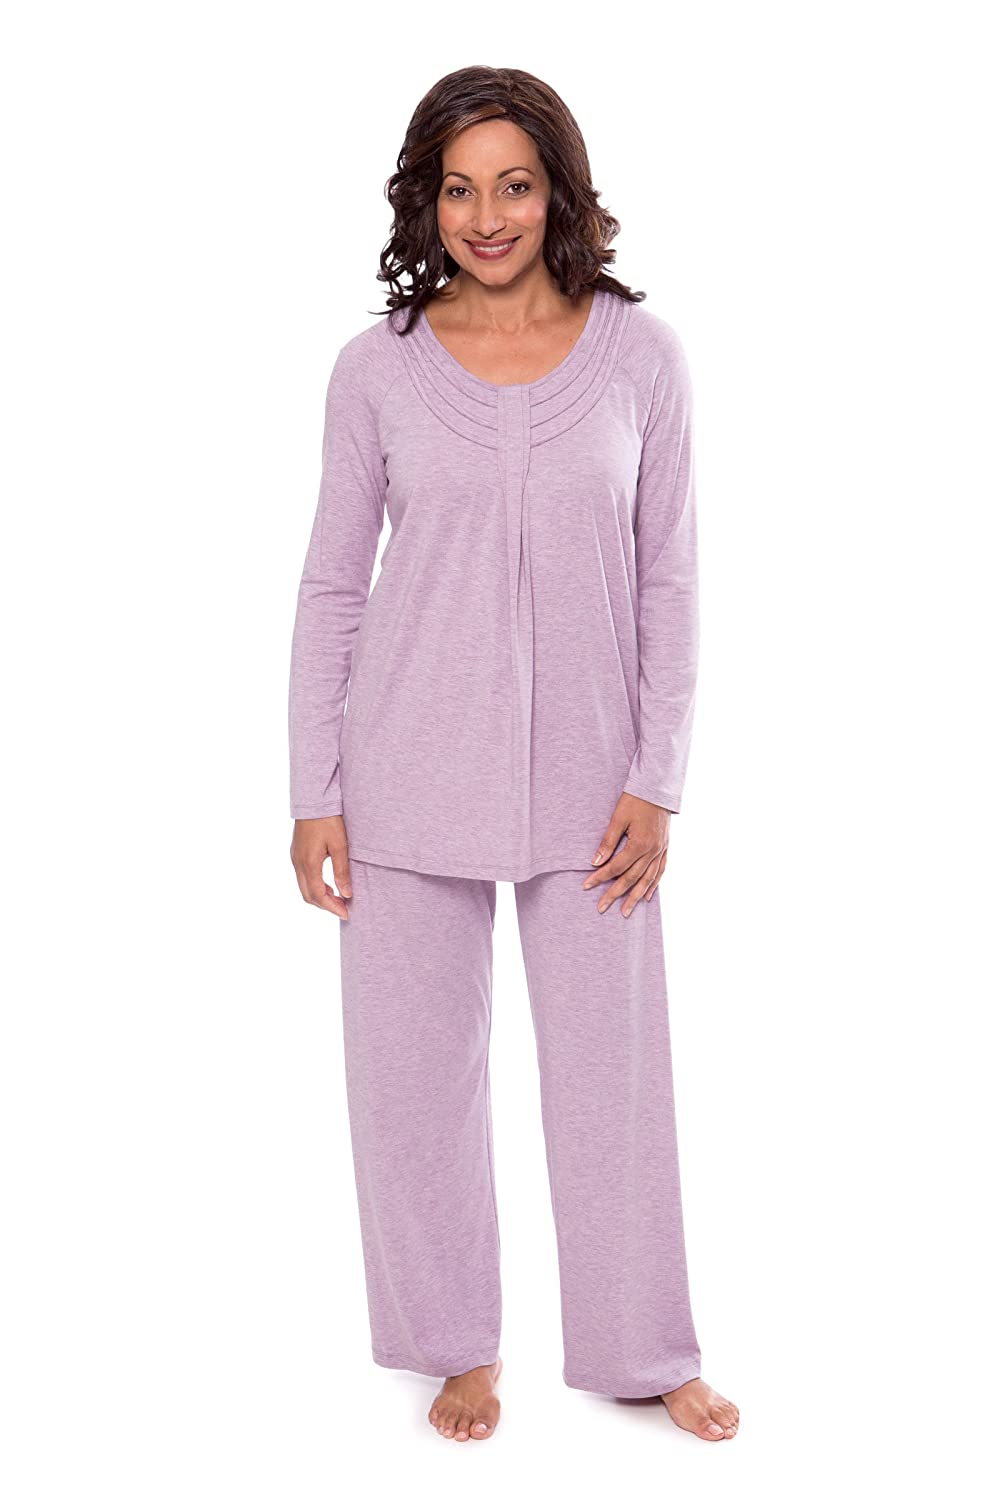 Texere Women's Long Sleeve Pajama Set - Stylish Cozy Pajamas for Her WB9996